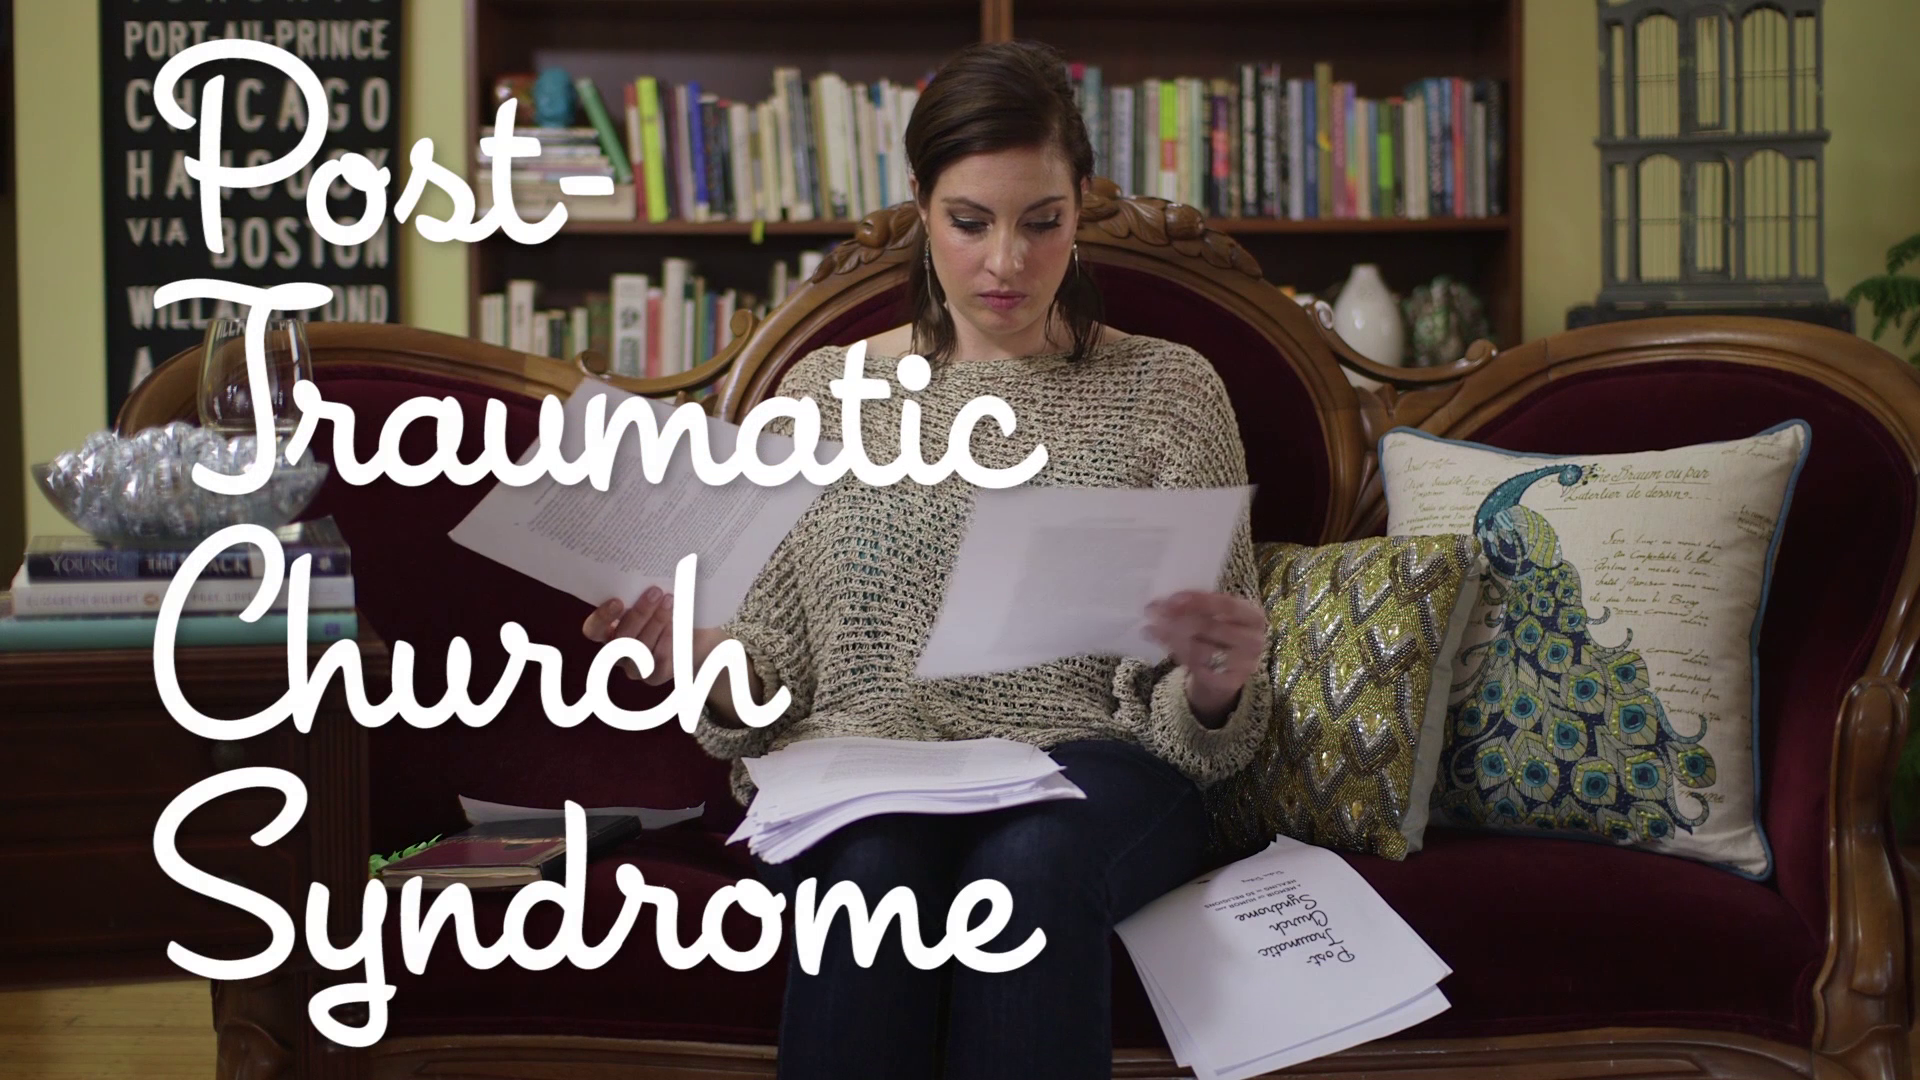 Finding Humor in 'Post-Traumatic Church Syndrome'